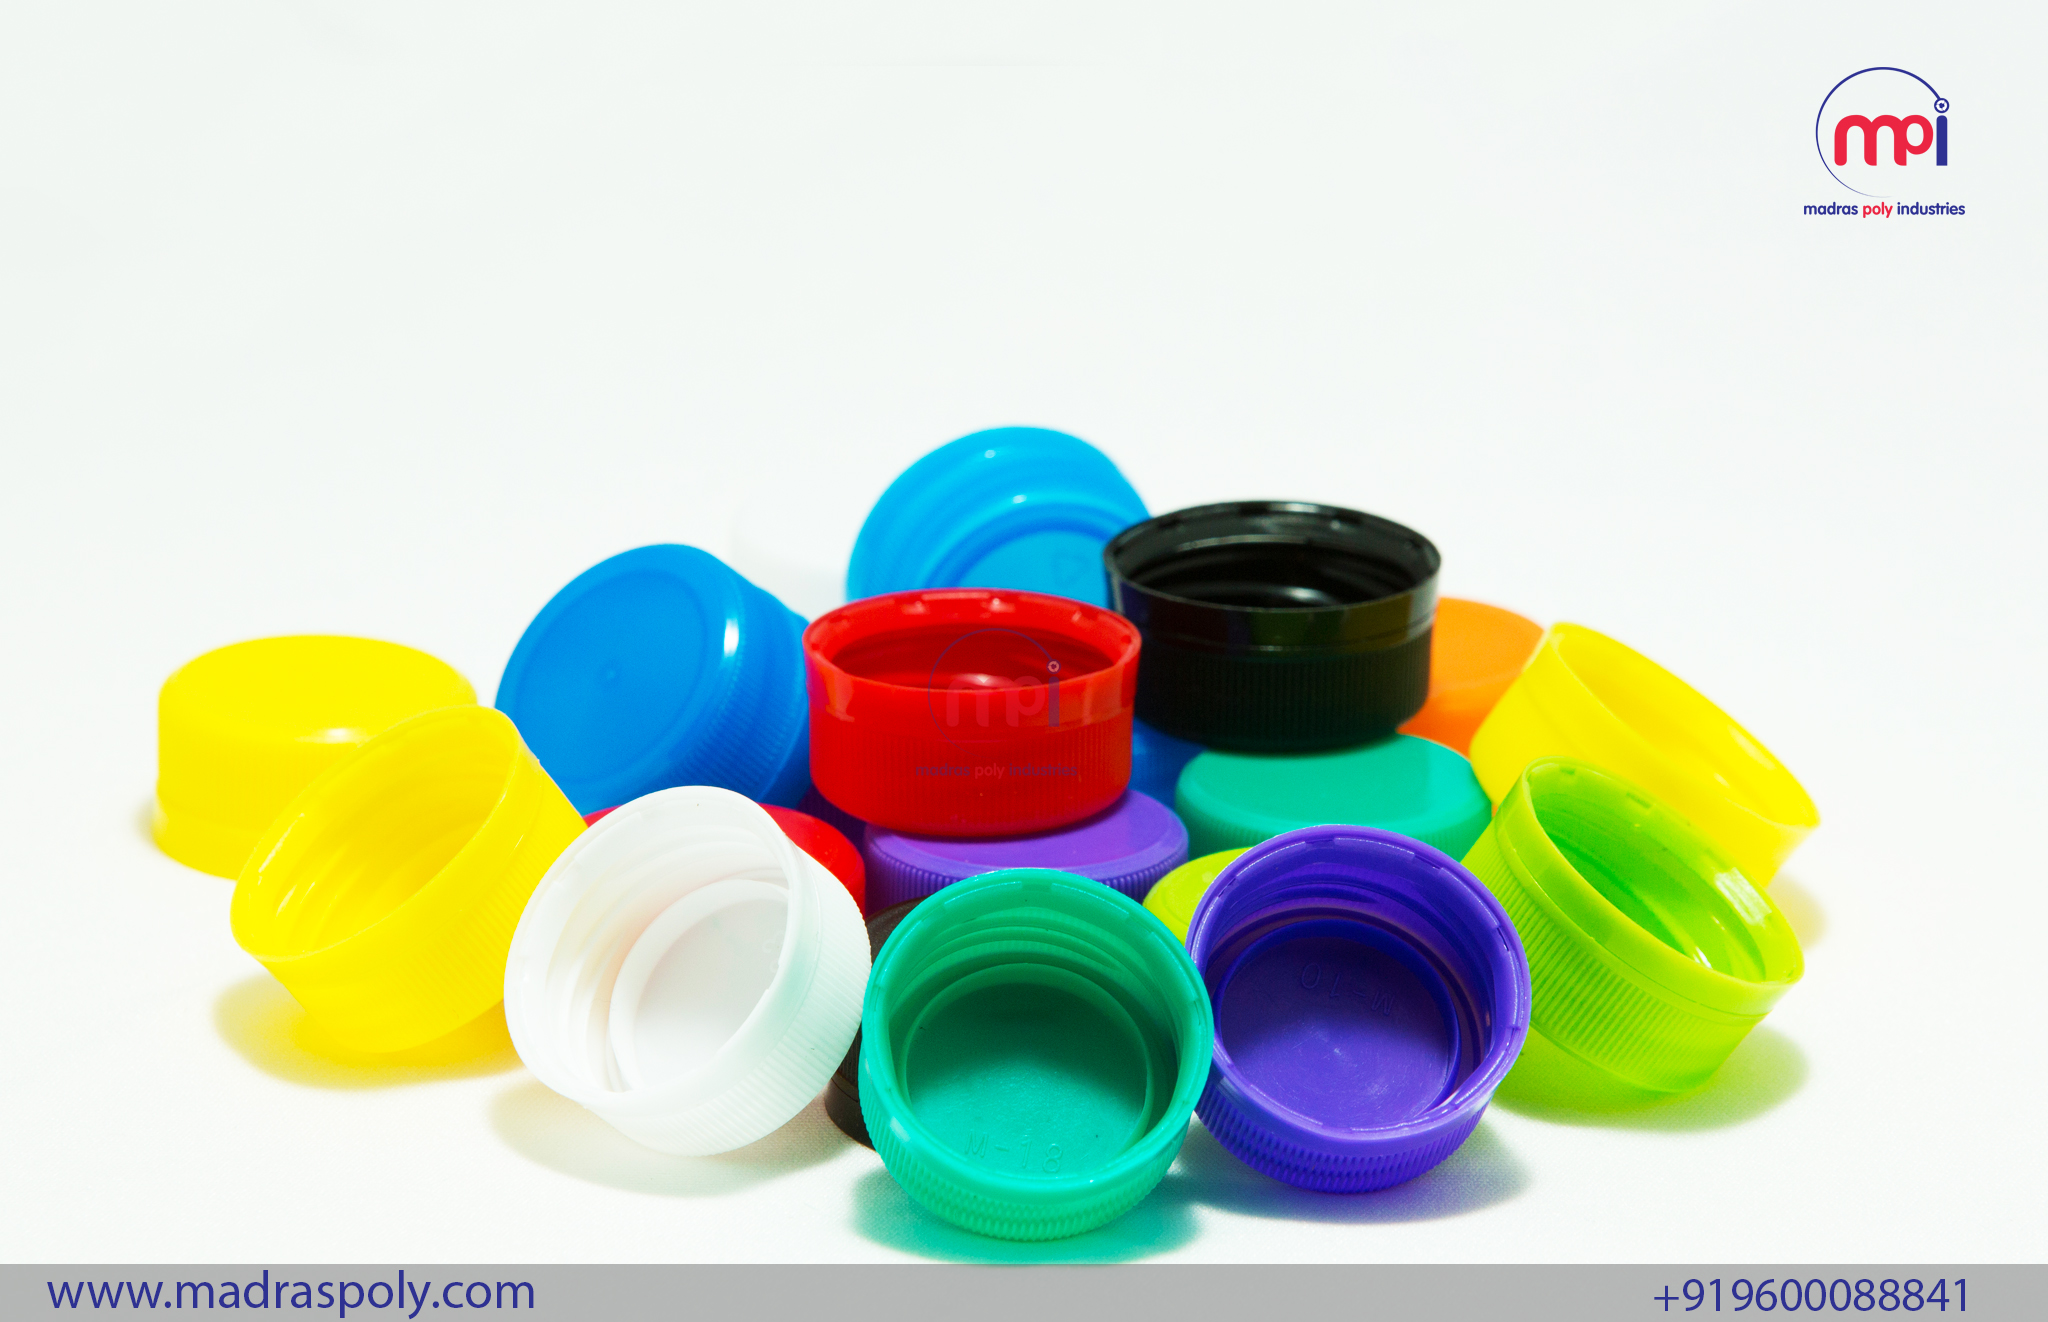 The Profitable Plastic Pet Bottle Caps Manufacturing Business for Sale in Chennai